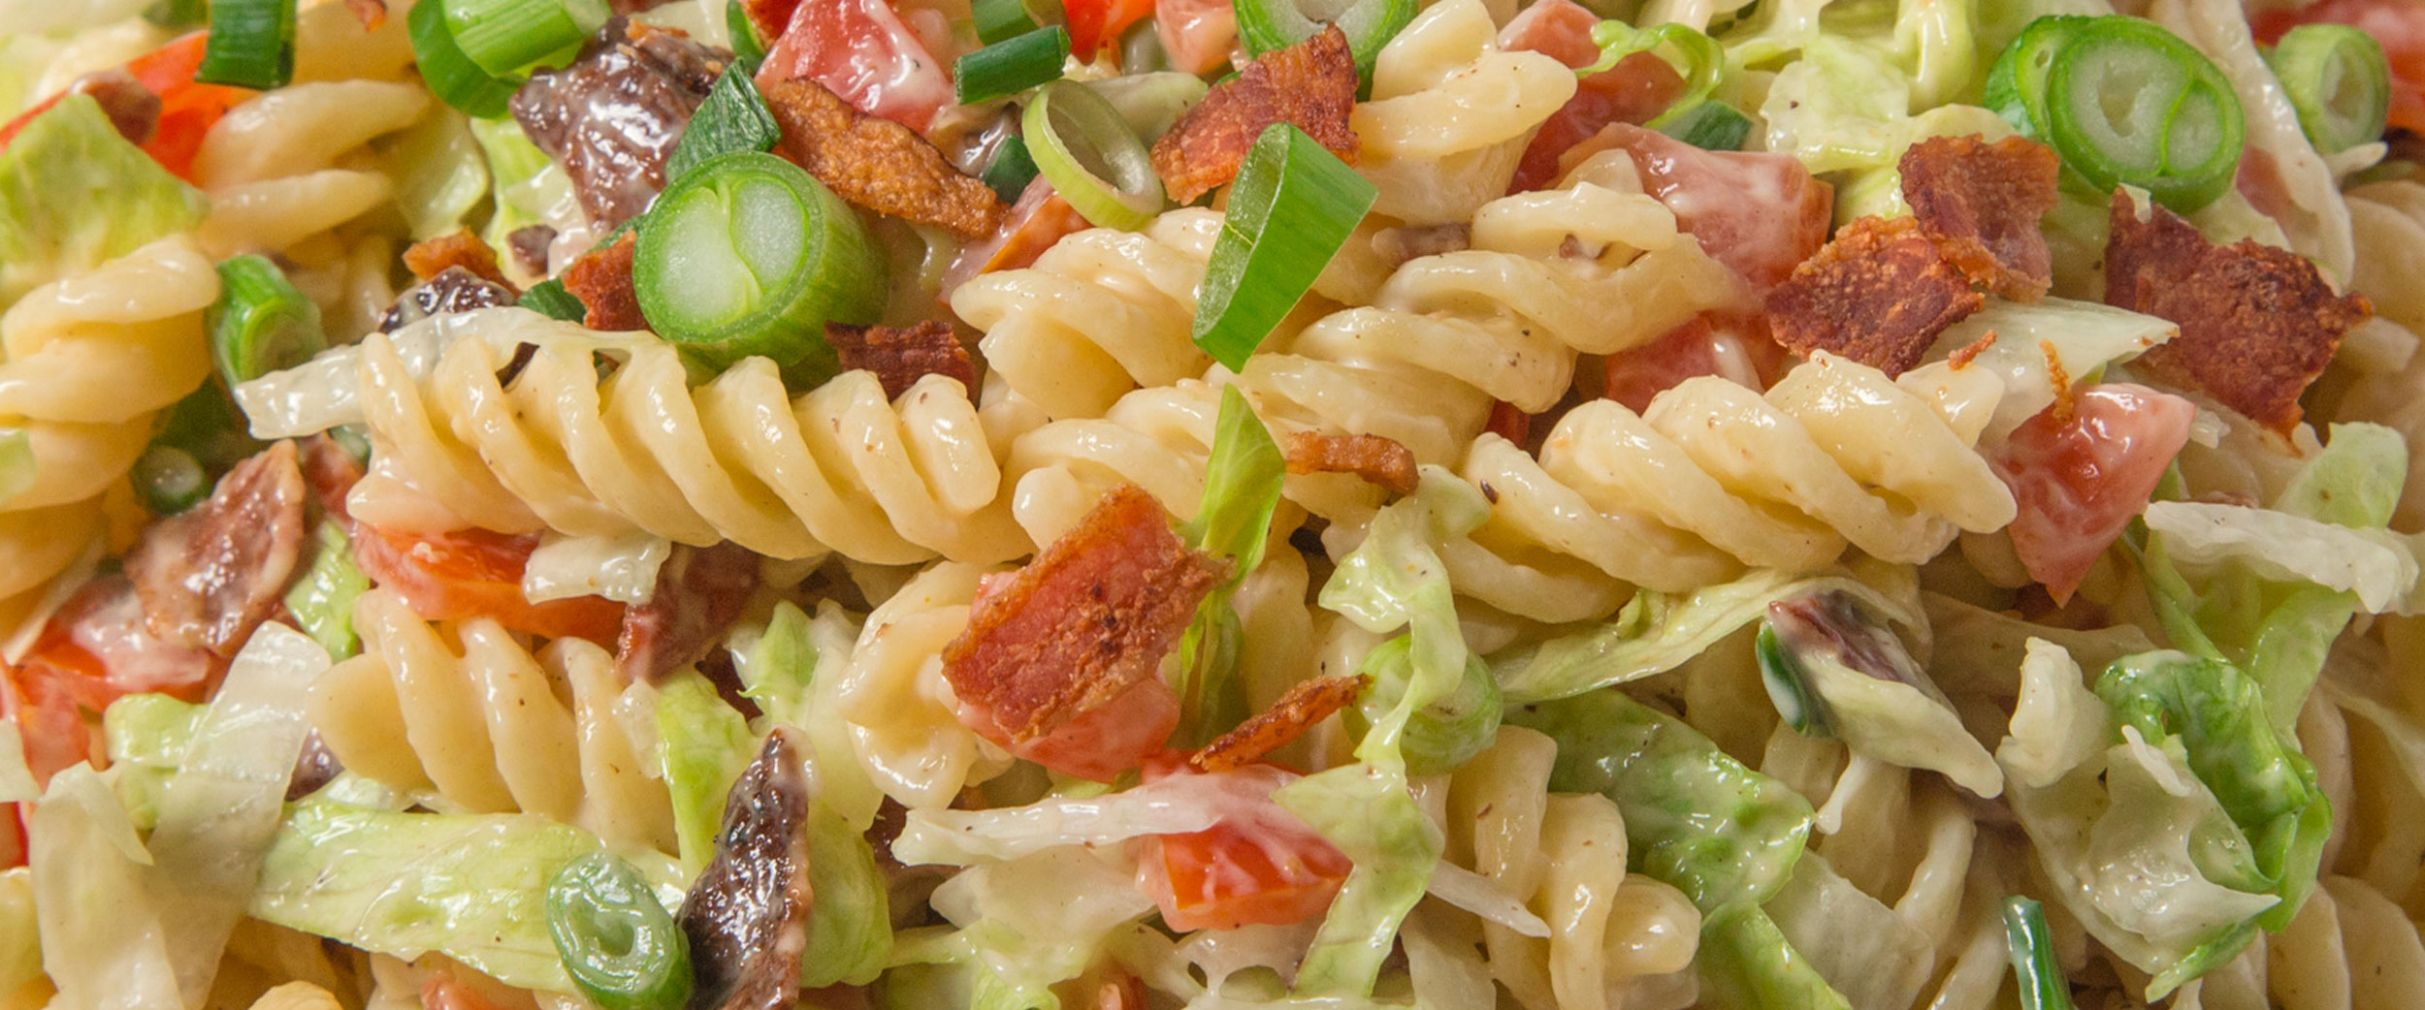 Easy pasta recipes for dinner with friends - The More Mag - Recipes Dinner With Friends